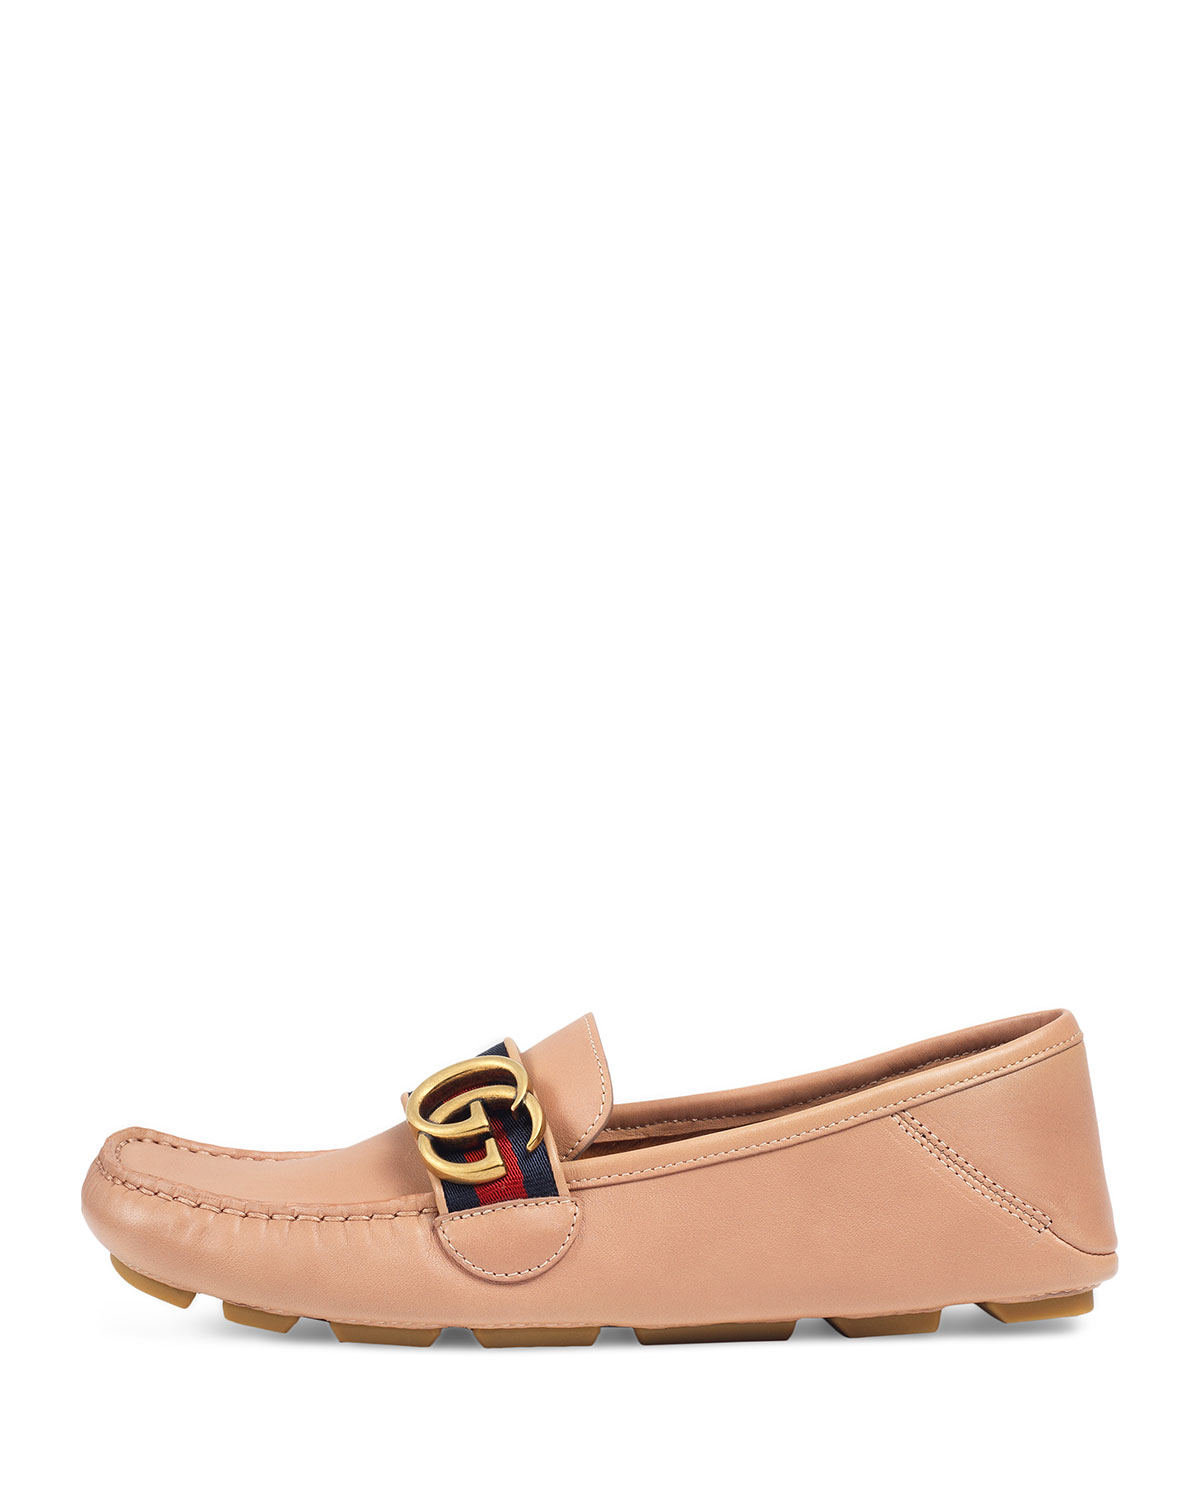 f71d0e27927 Gucci Noel Leather Web Loafer